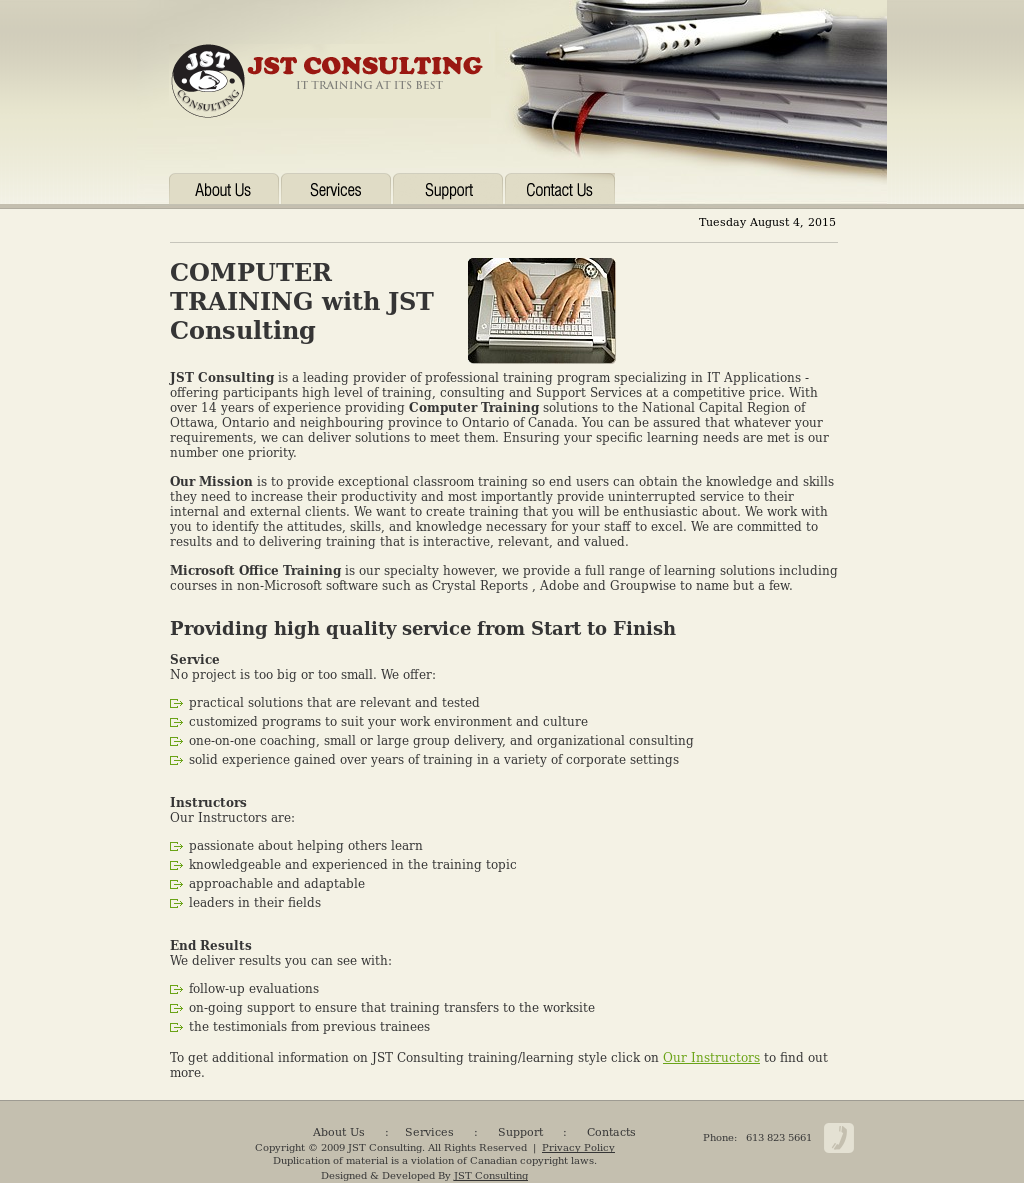 JST Consulting Competitors, Revenue and Employees - Owler